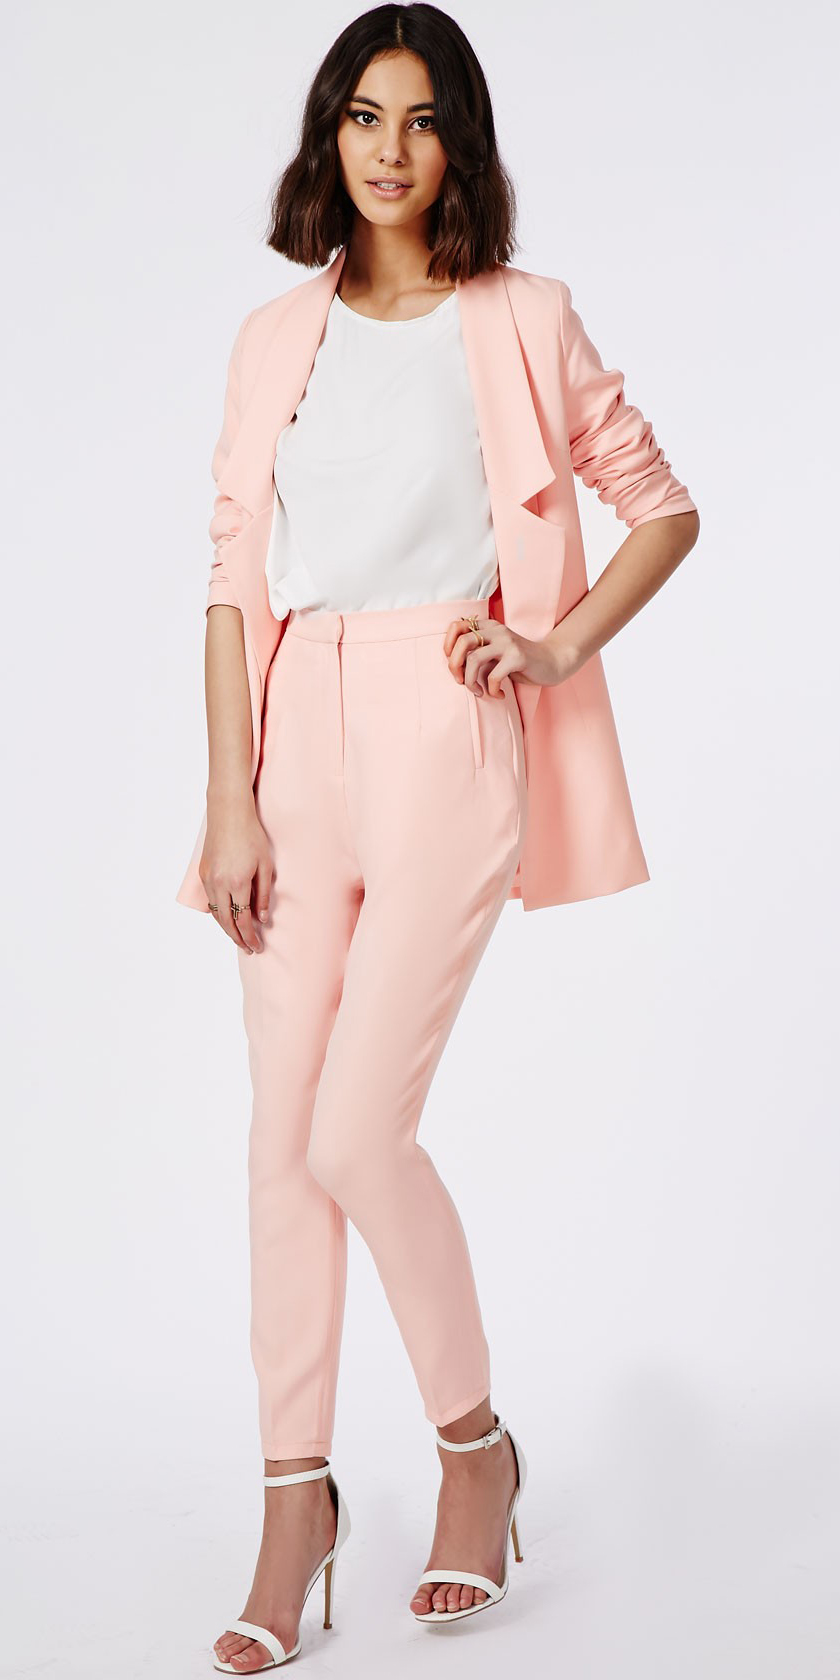 r-pink-light-slim-pants-white-top-pink-light-jacket-blazer-suit-white-shoe-sandalh-howtowear-fashion-style-outfit-spring-summer-brun-dinner.jpg